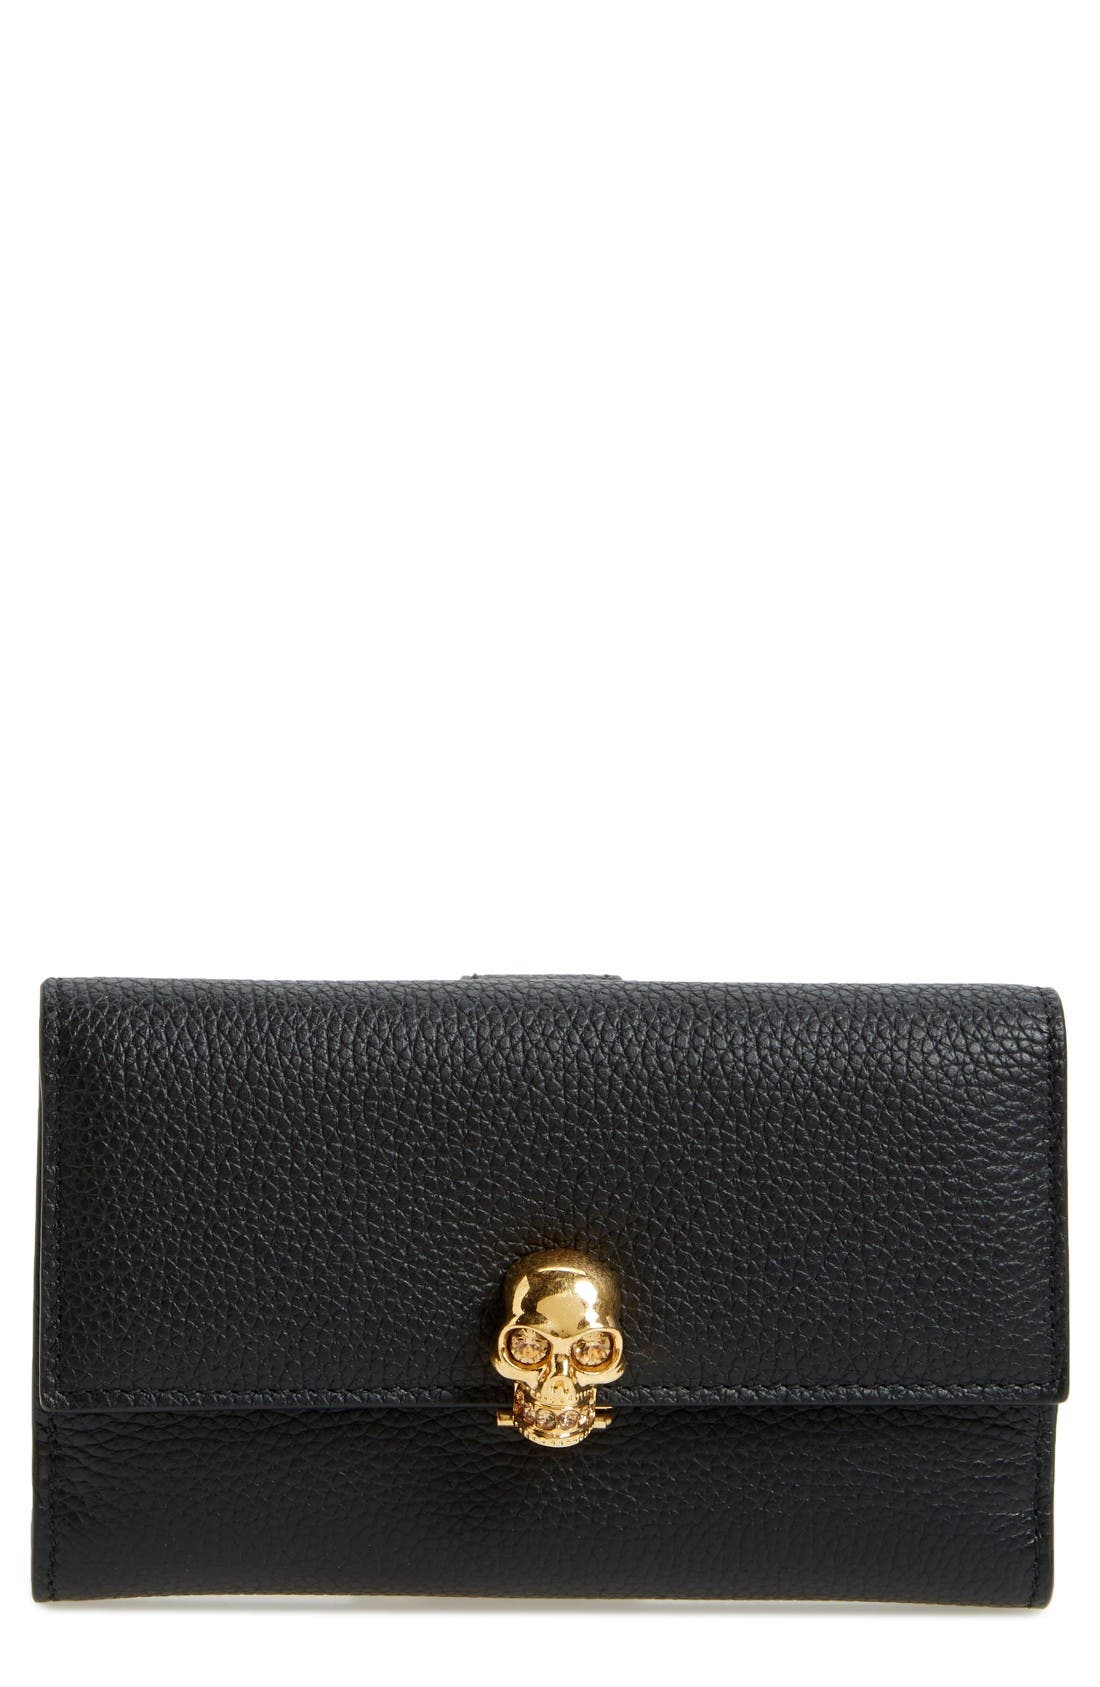 Alexander McQueen Leather French Wallet